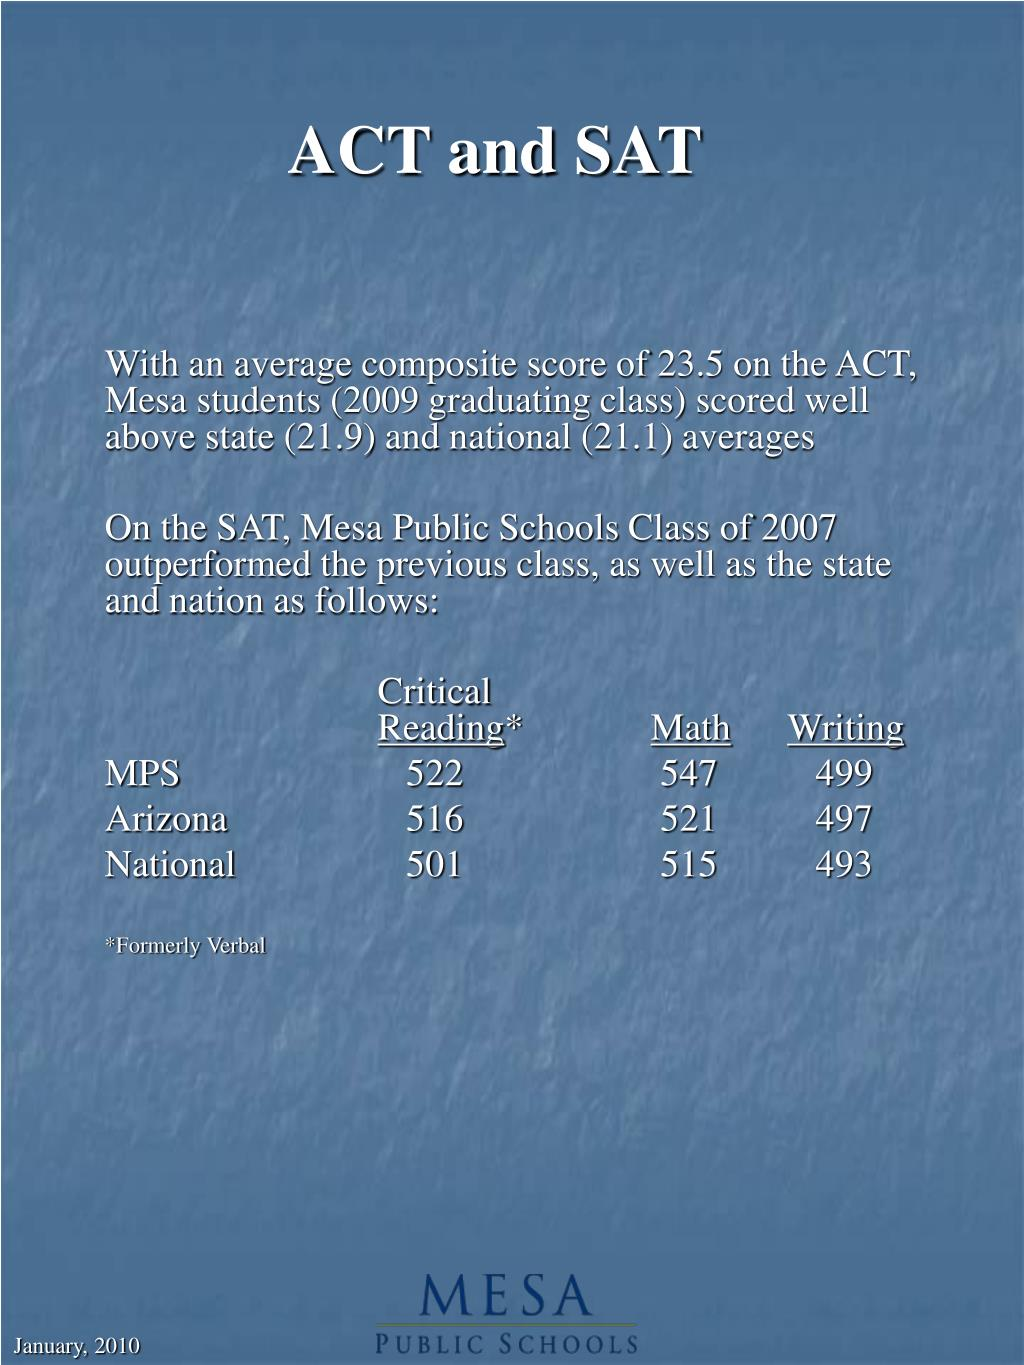 ACT and SAT